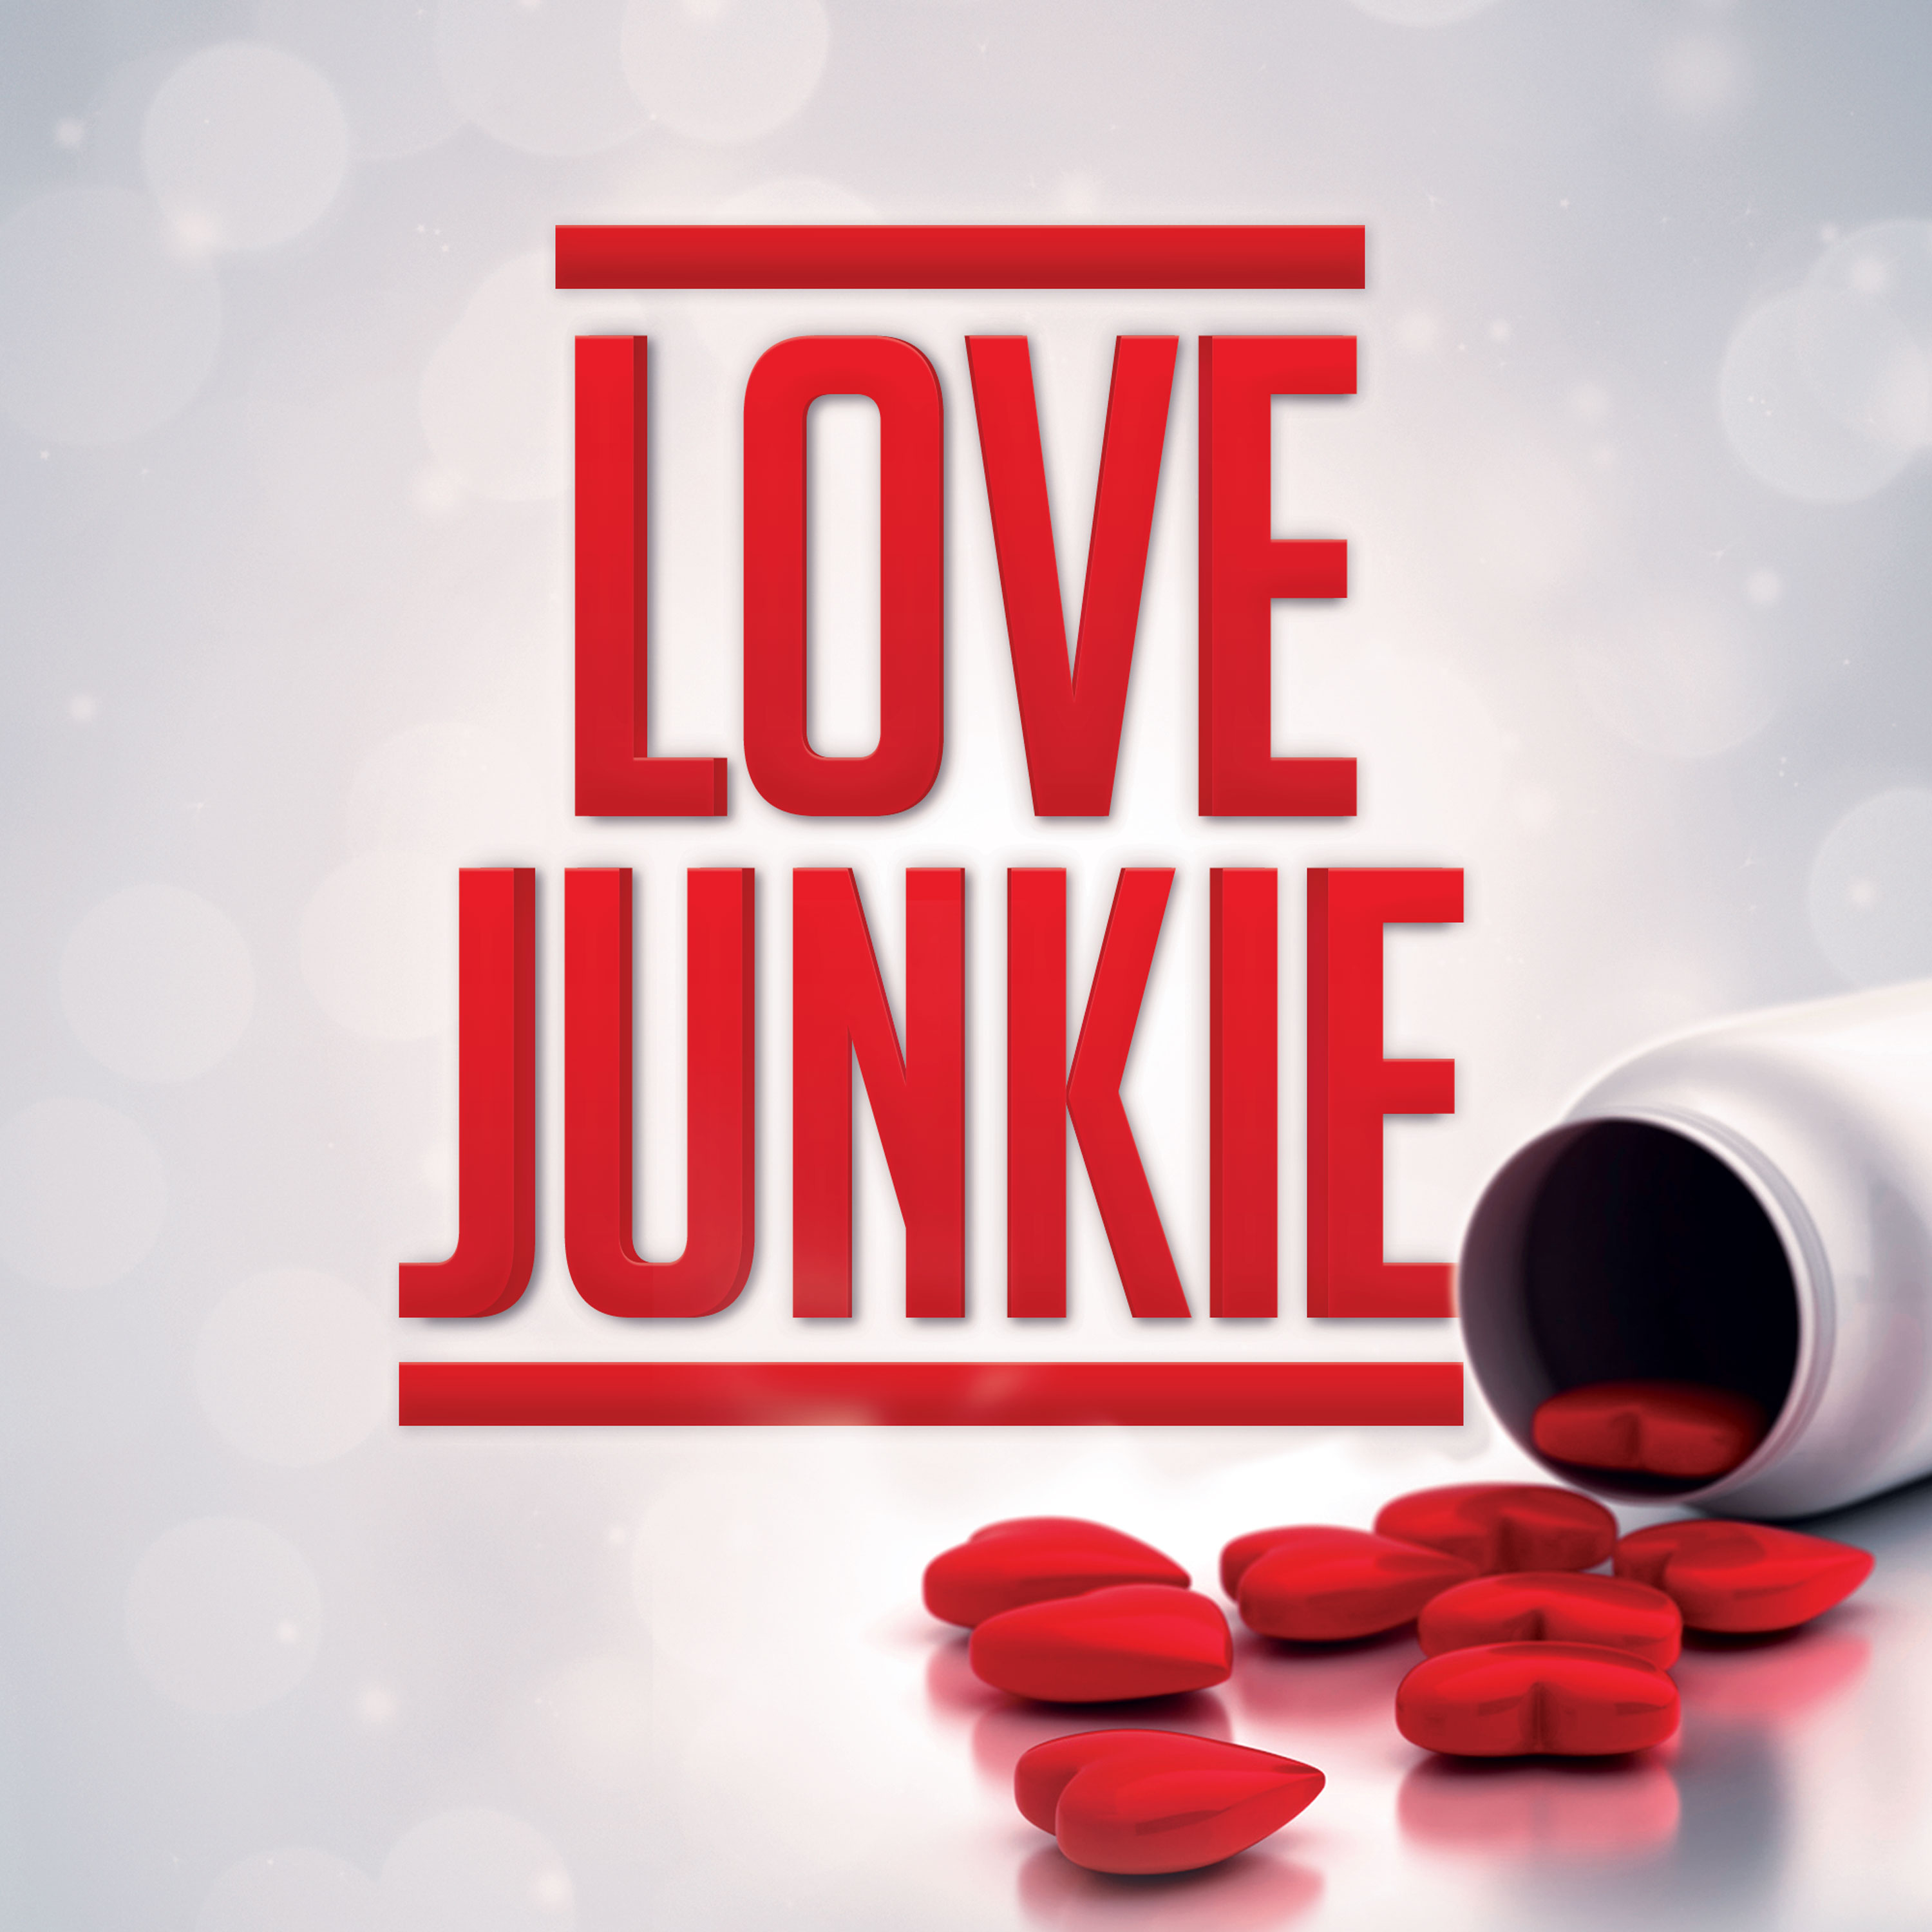 Love Junkie: Help for the Relationship Obsessed, Love Addicted, & Codependent - #1: What is Love Junkie and What Will We Learn?